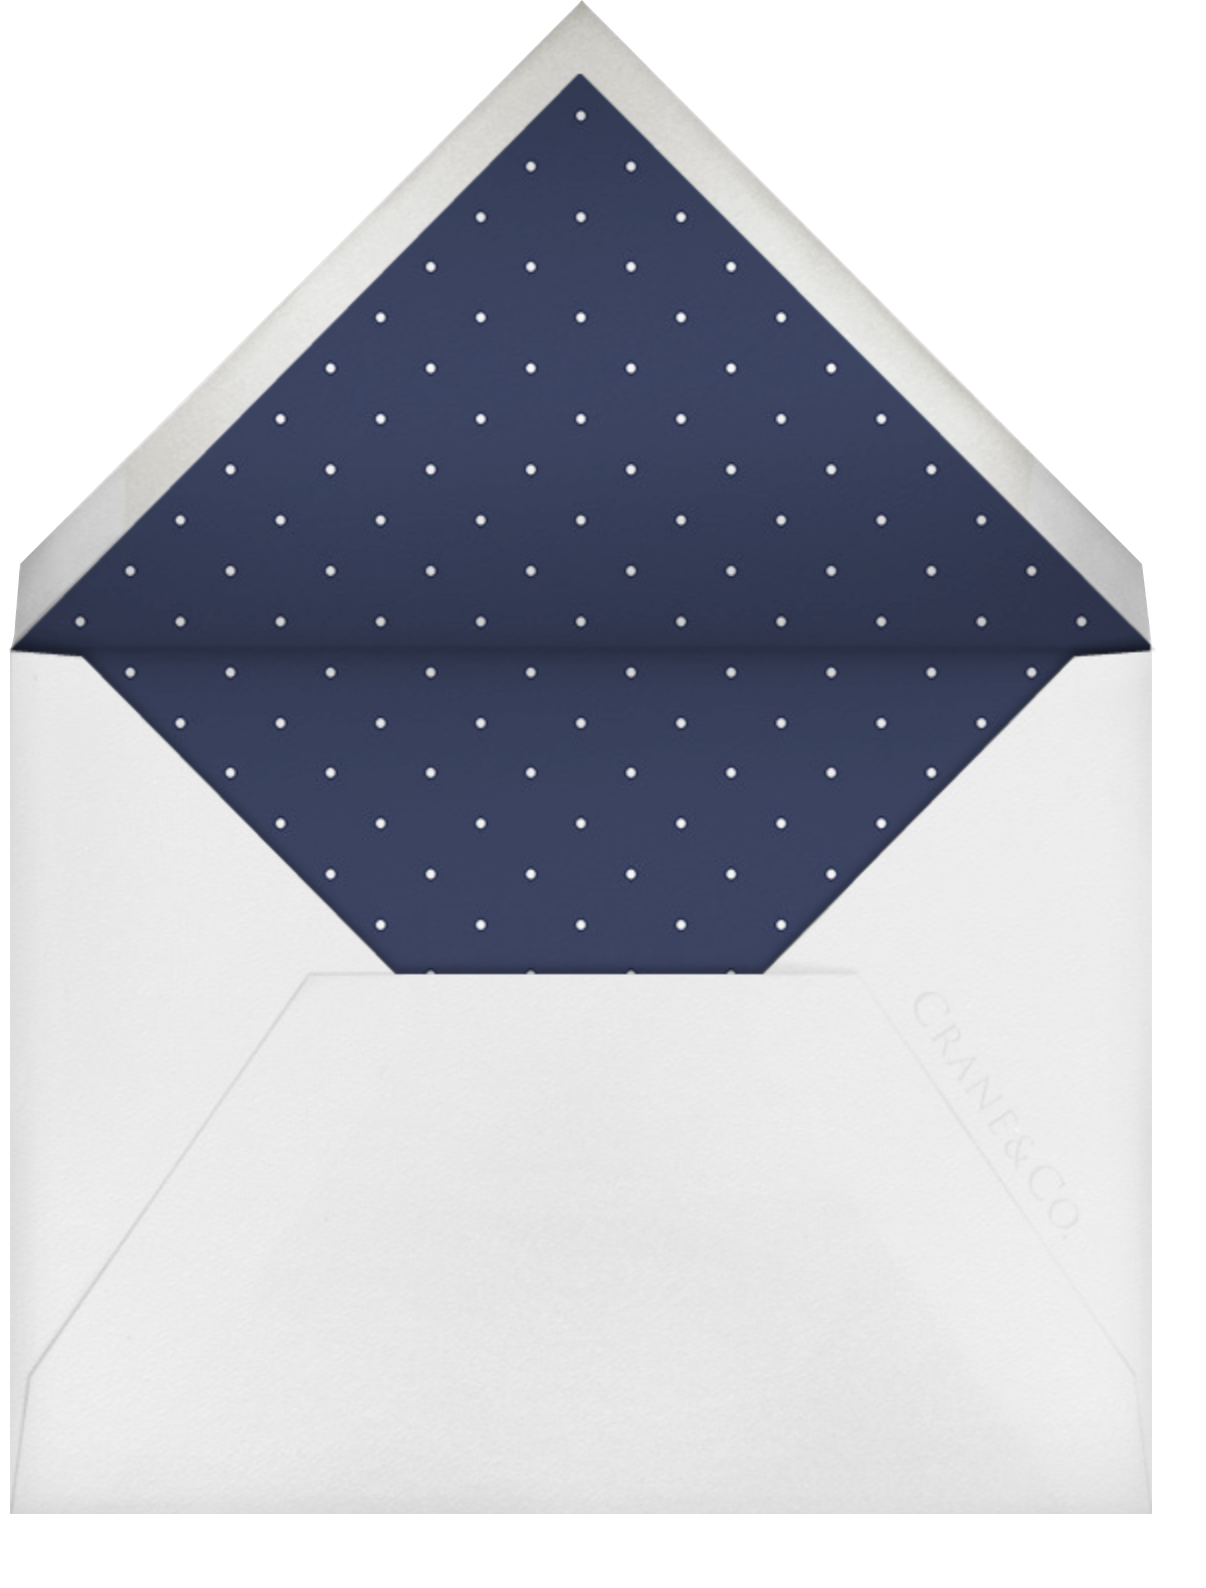 Grand Jatte (Save The Date) - French Blue - Crane & Co. - null - envelope back